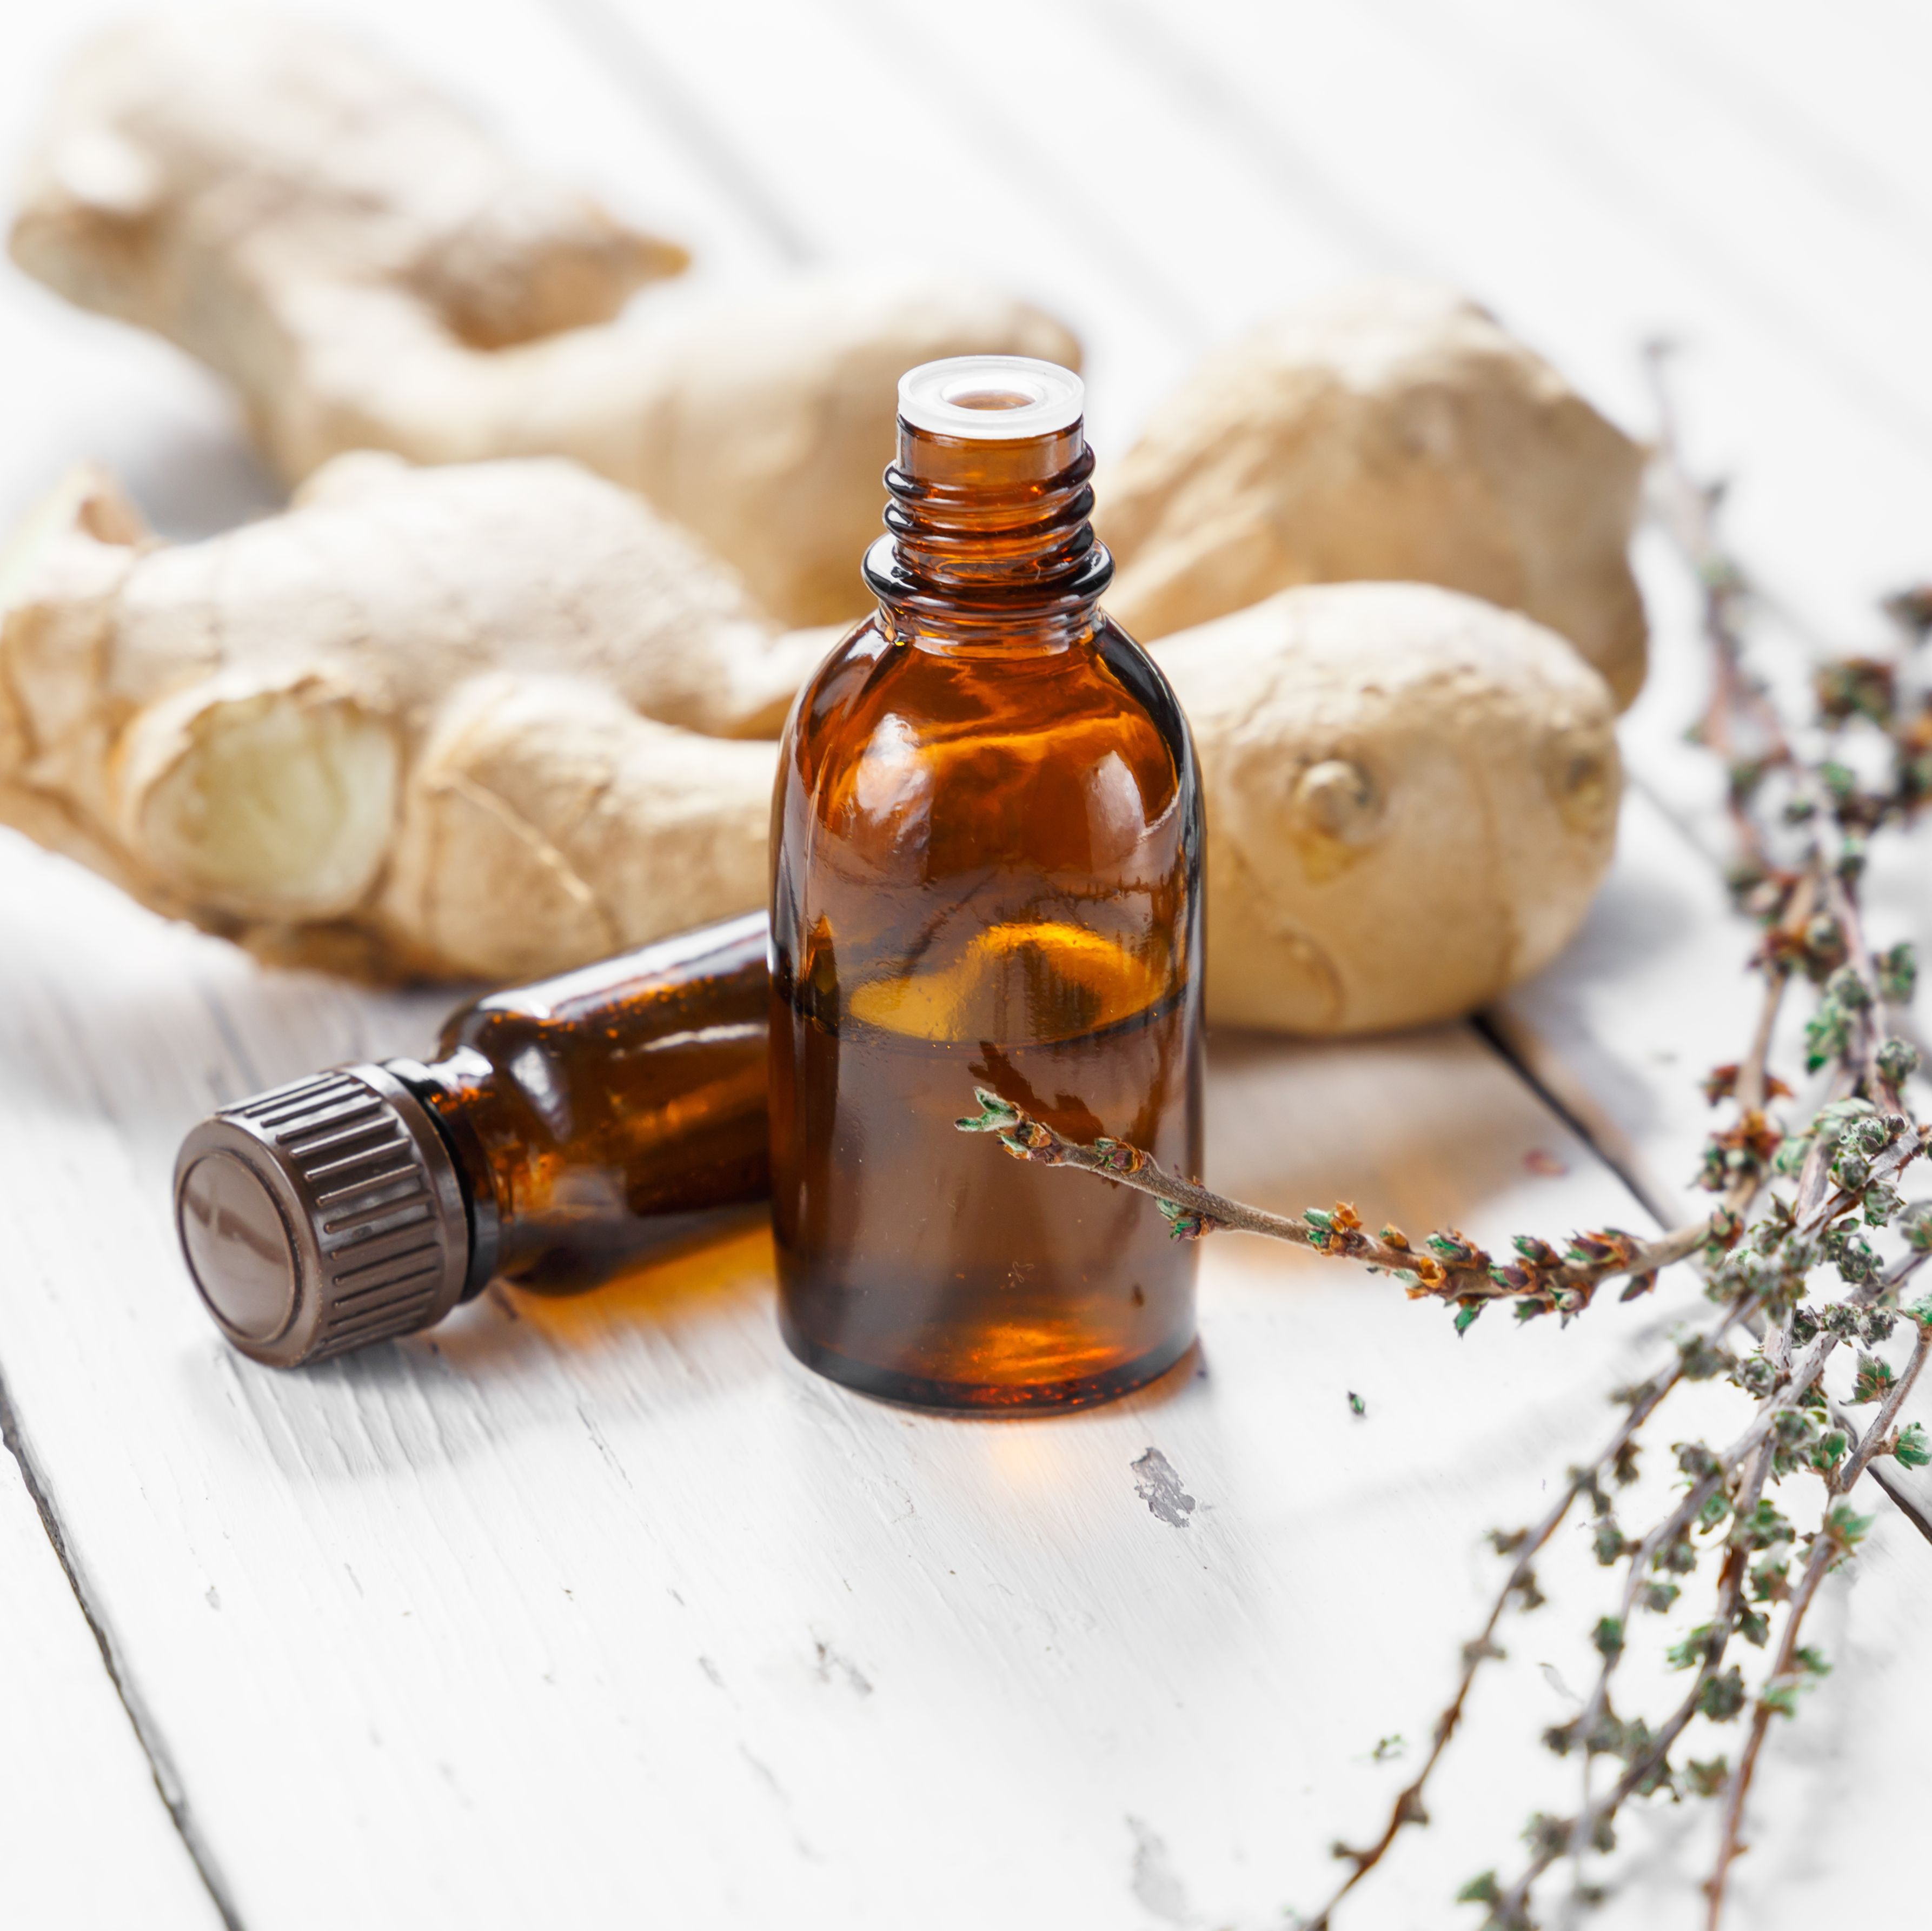 How to Use Ginger Oil for Swelling and Inflammation, According to a Dermatologist